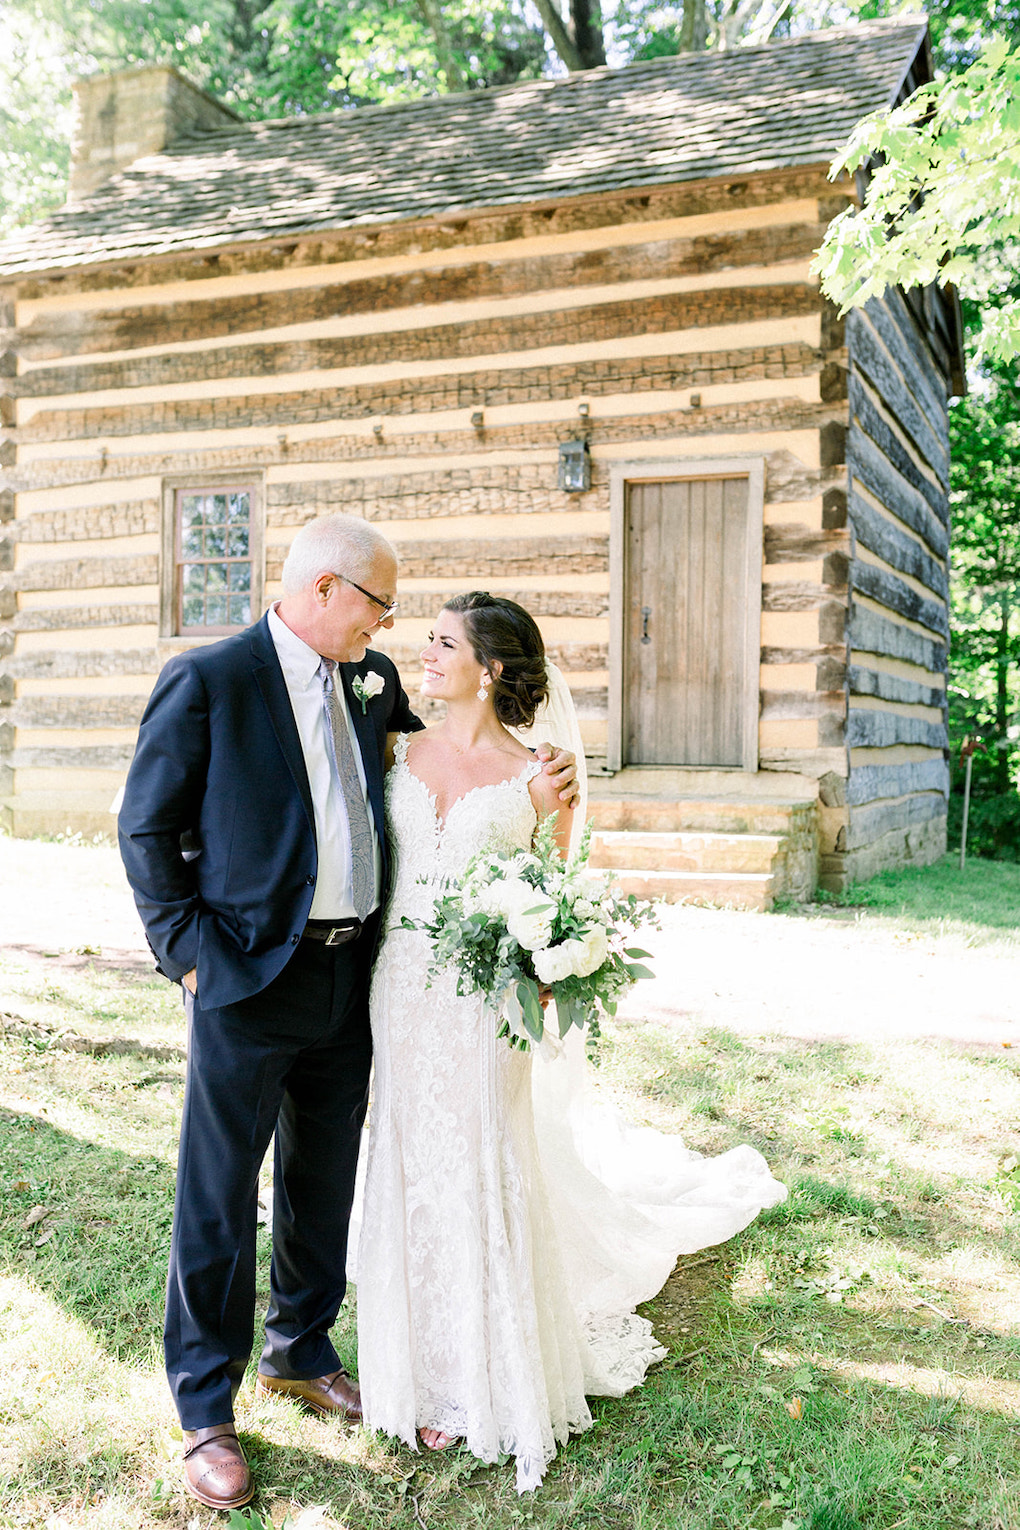 Father Daughter Wedding photos: Pittsburgh Botanic Garden wedding planned by Exhale Events. See more wedding inspiration at exhale-events.com!